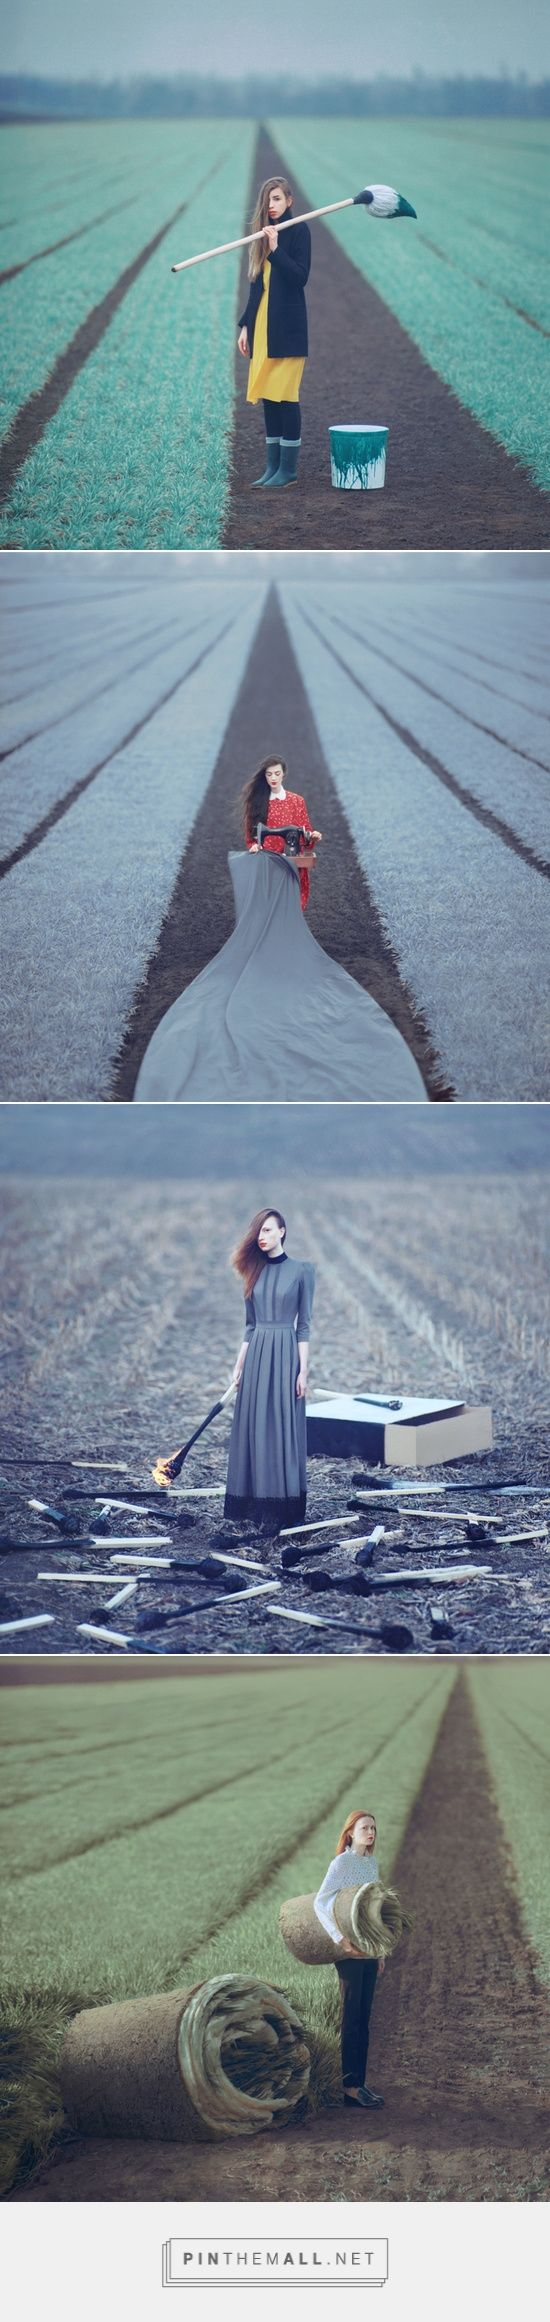 Best OLEG OPRISCO Images On Pinterest Art Photography - Beautiful surreal photography oleg oprisco